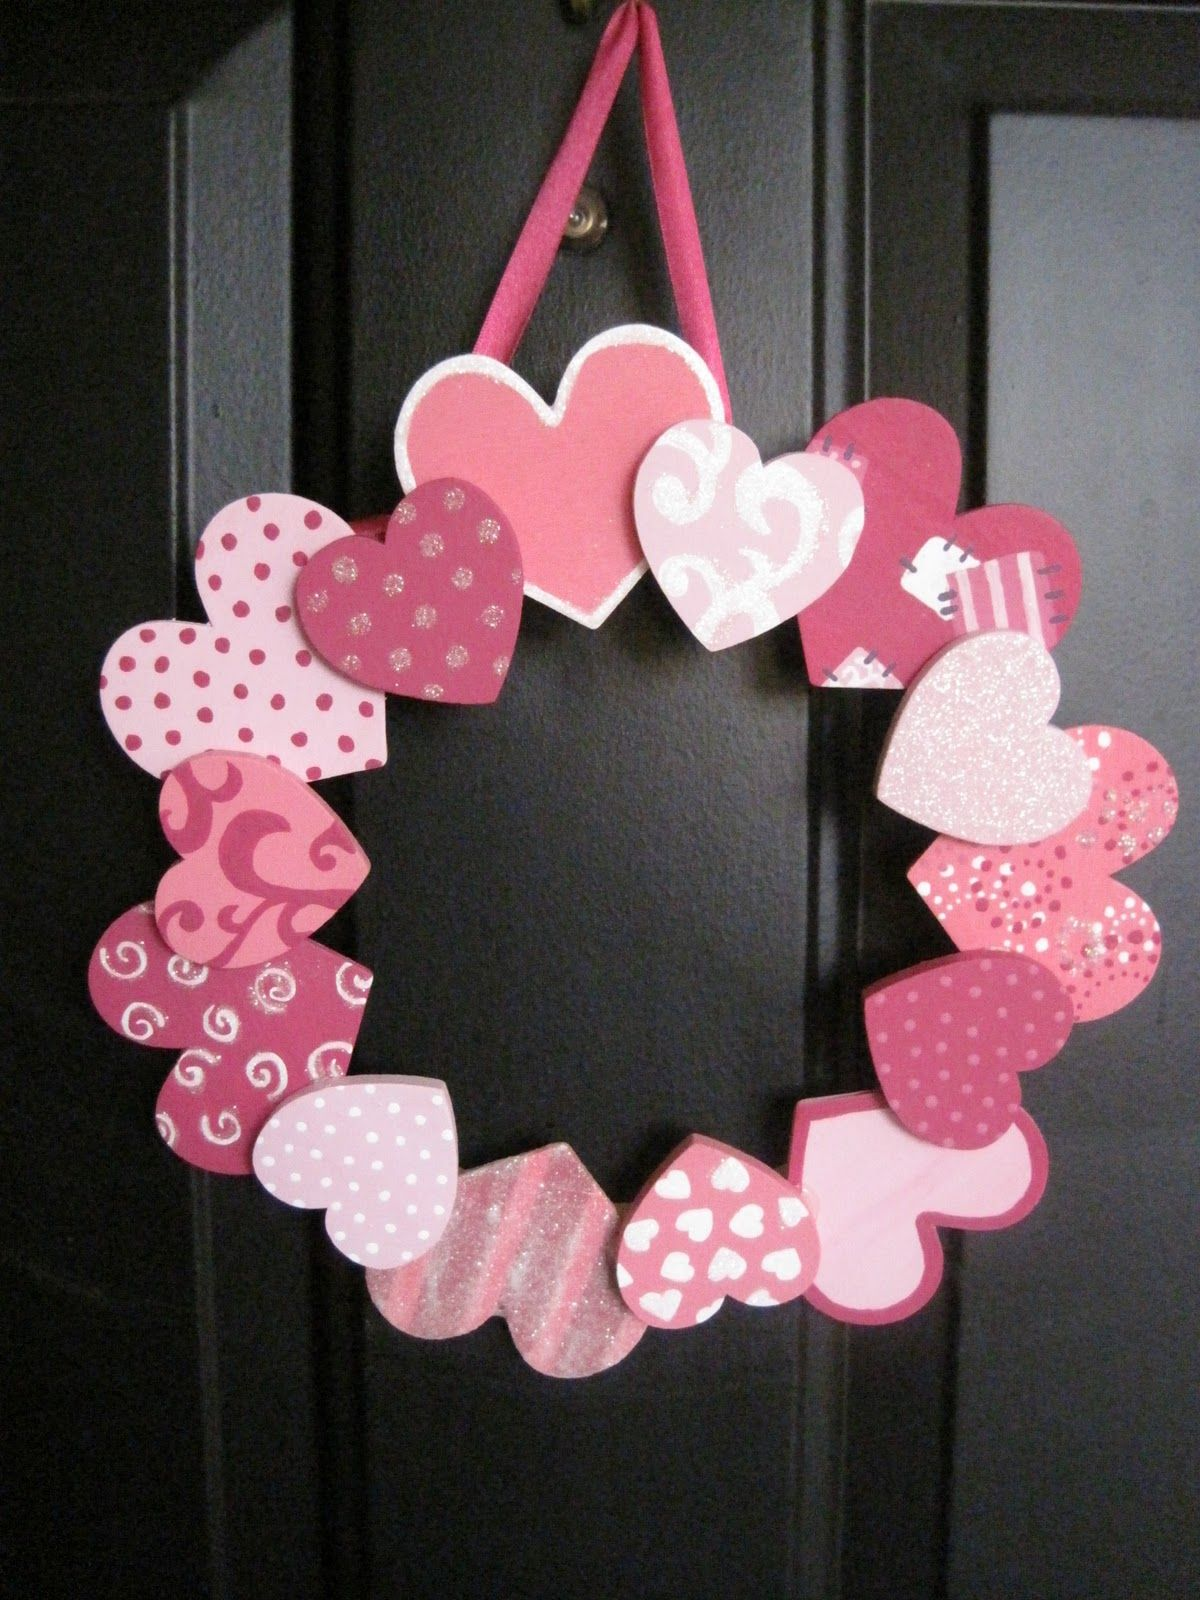 20 Easy Diy Wreath Ideas For Valentine S Day Wreaths Pinterest